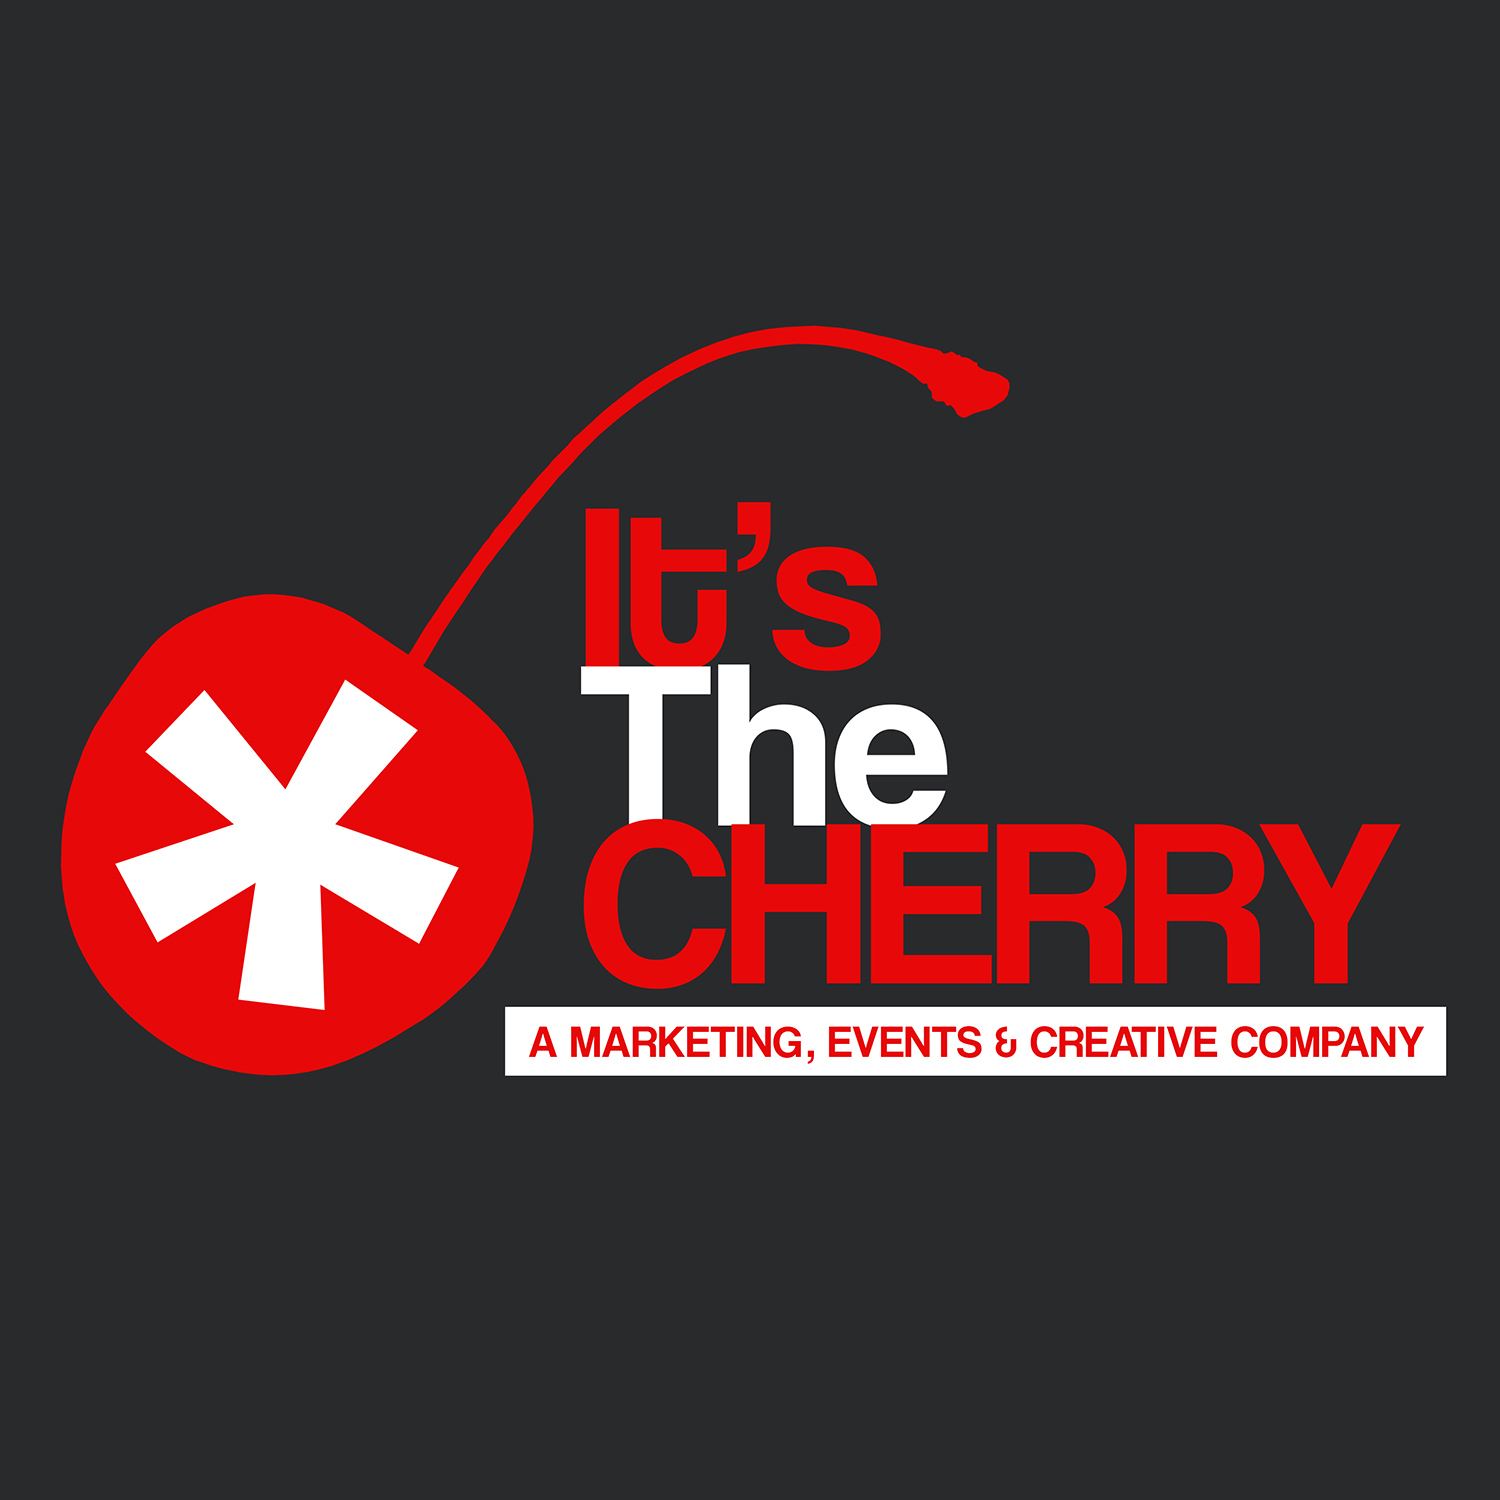 It's The Cherry logo